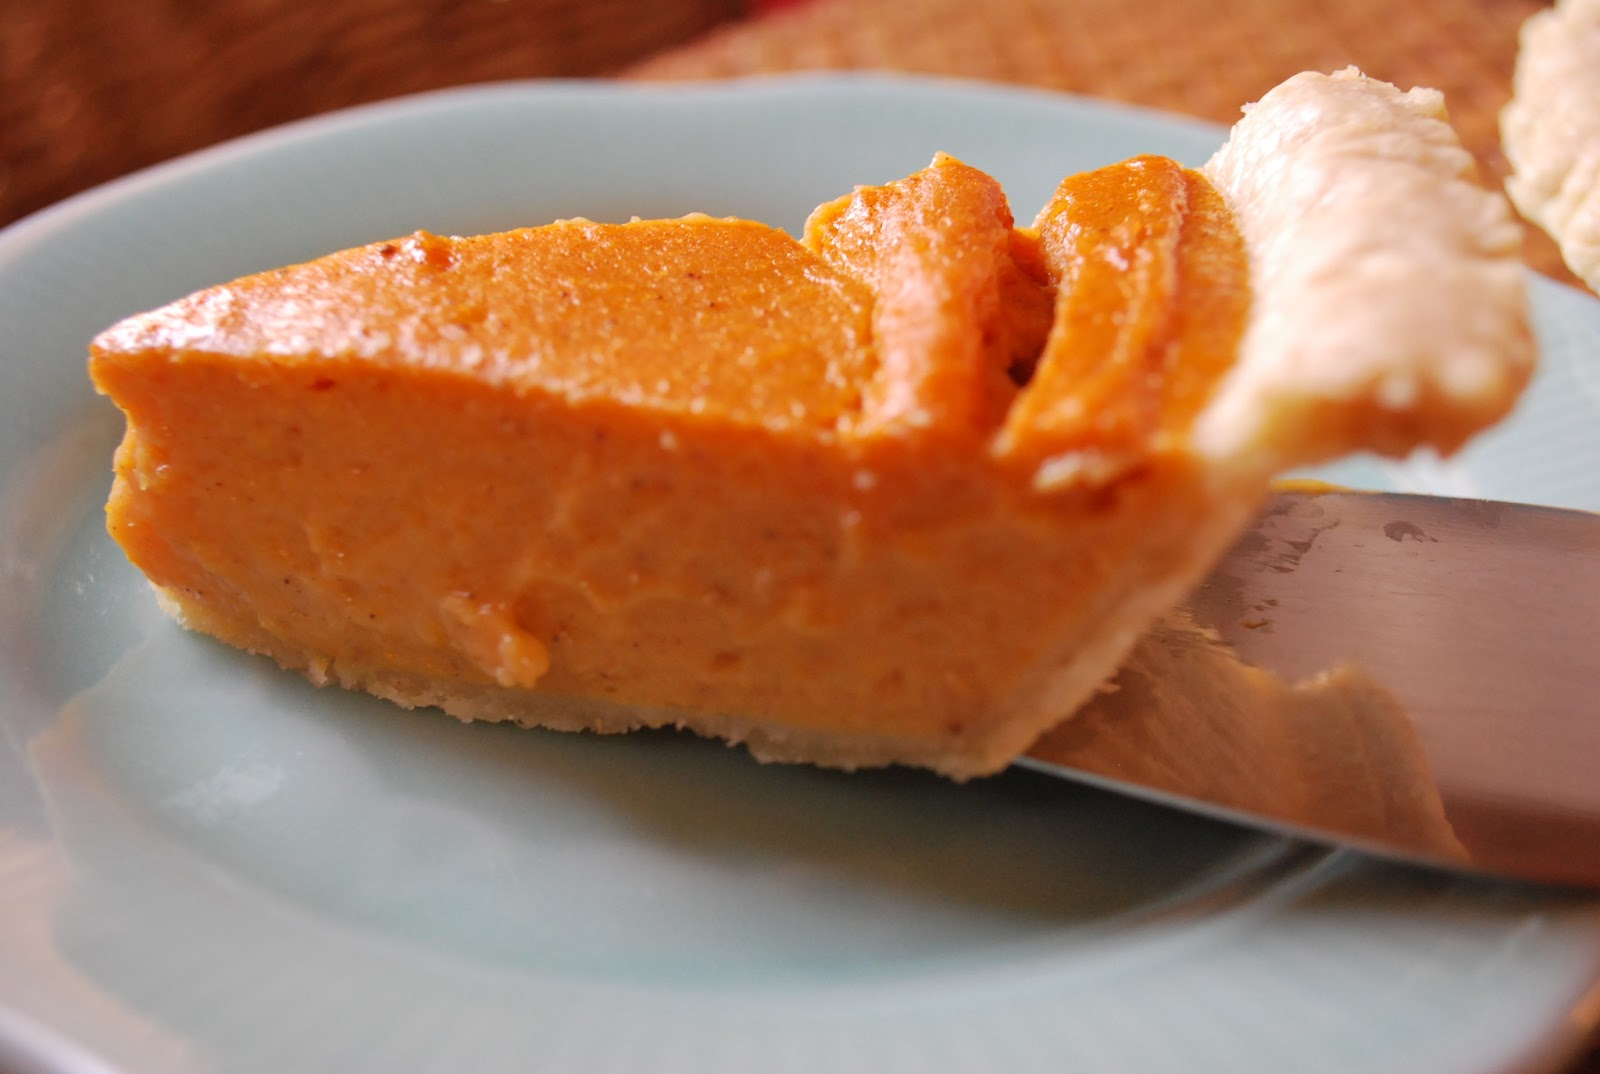 Kūlia cooks!: Moni's Vegan Sweet potato pie experiment